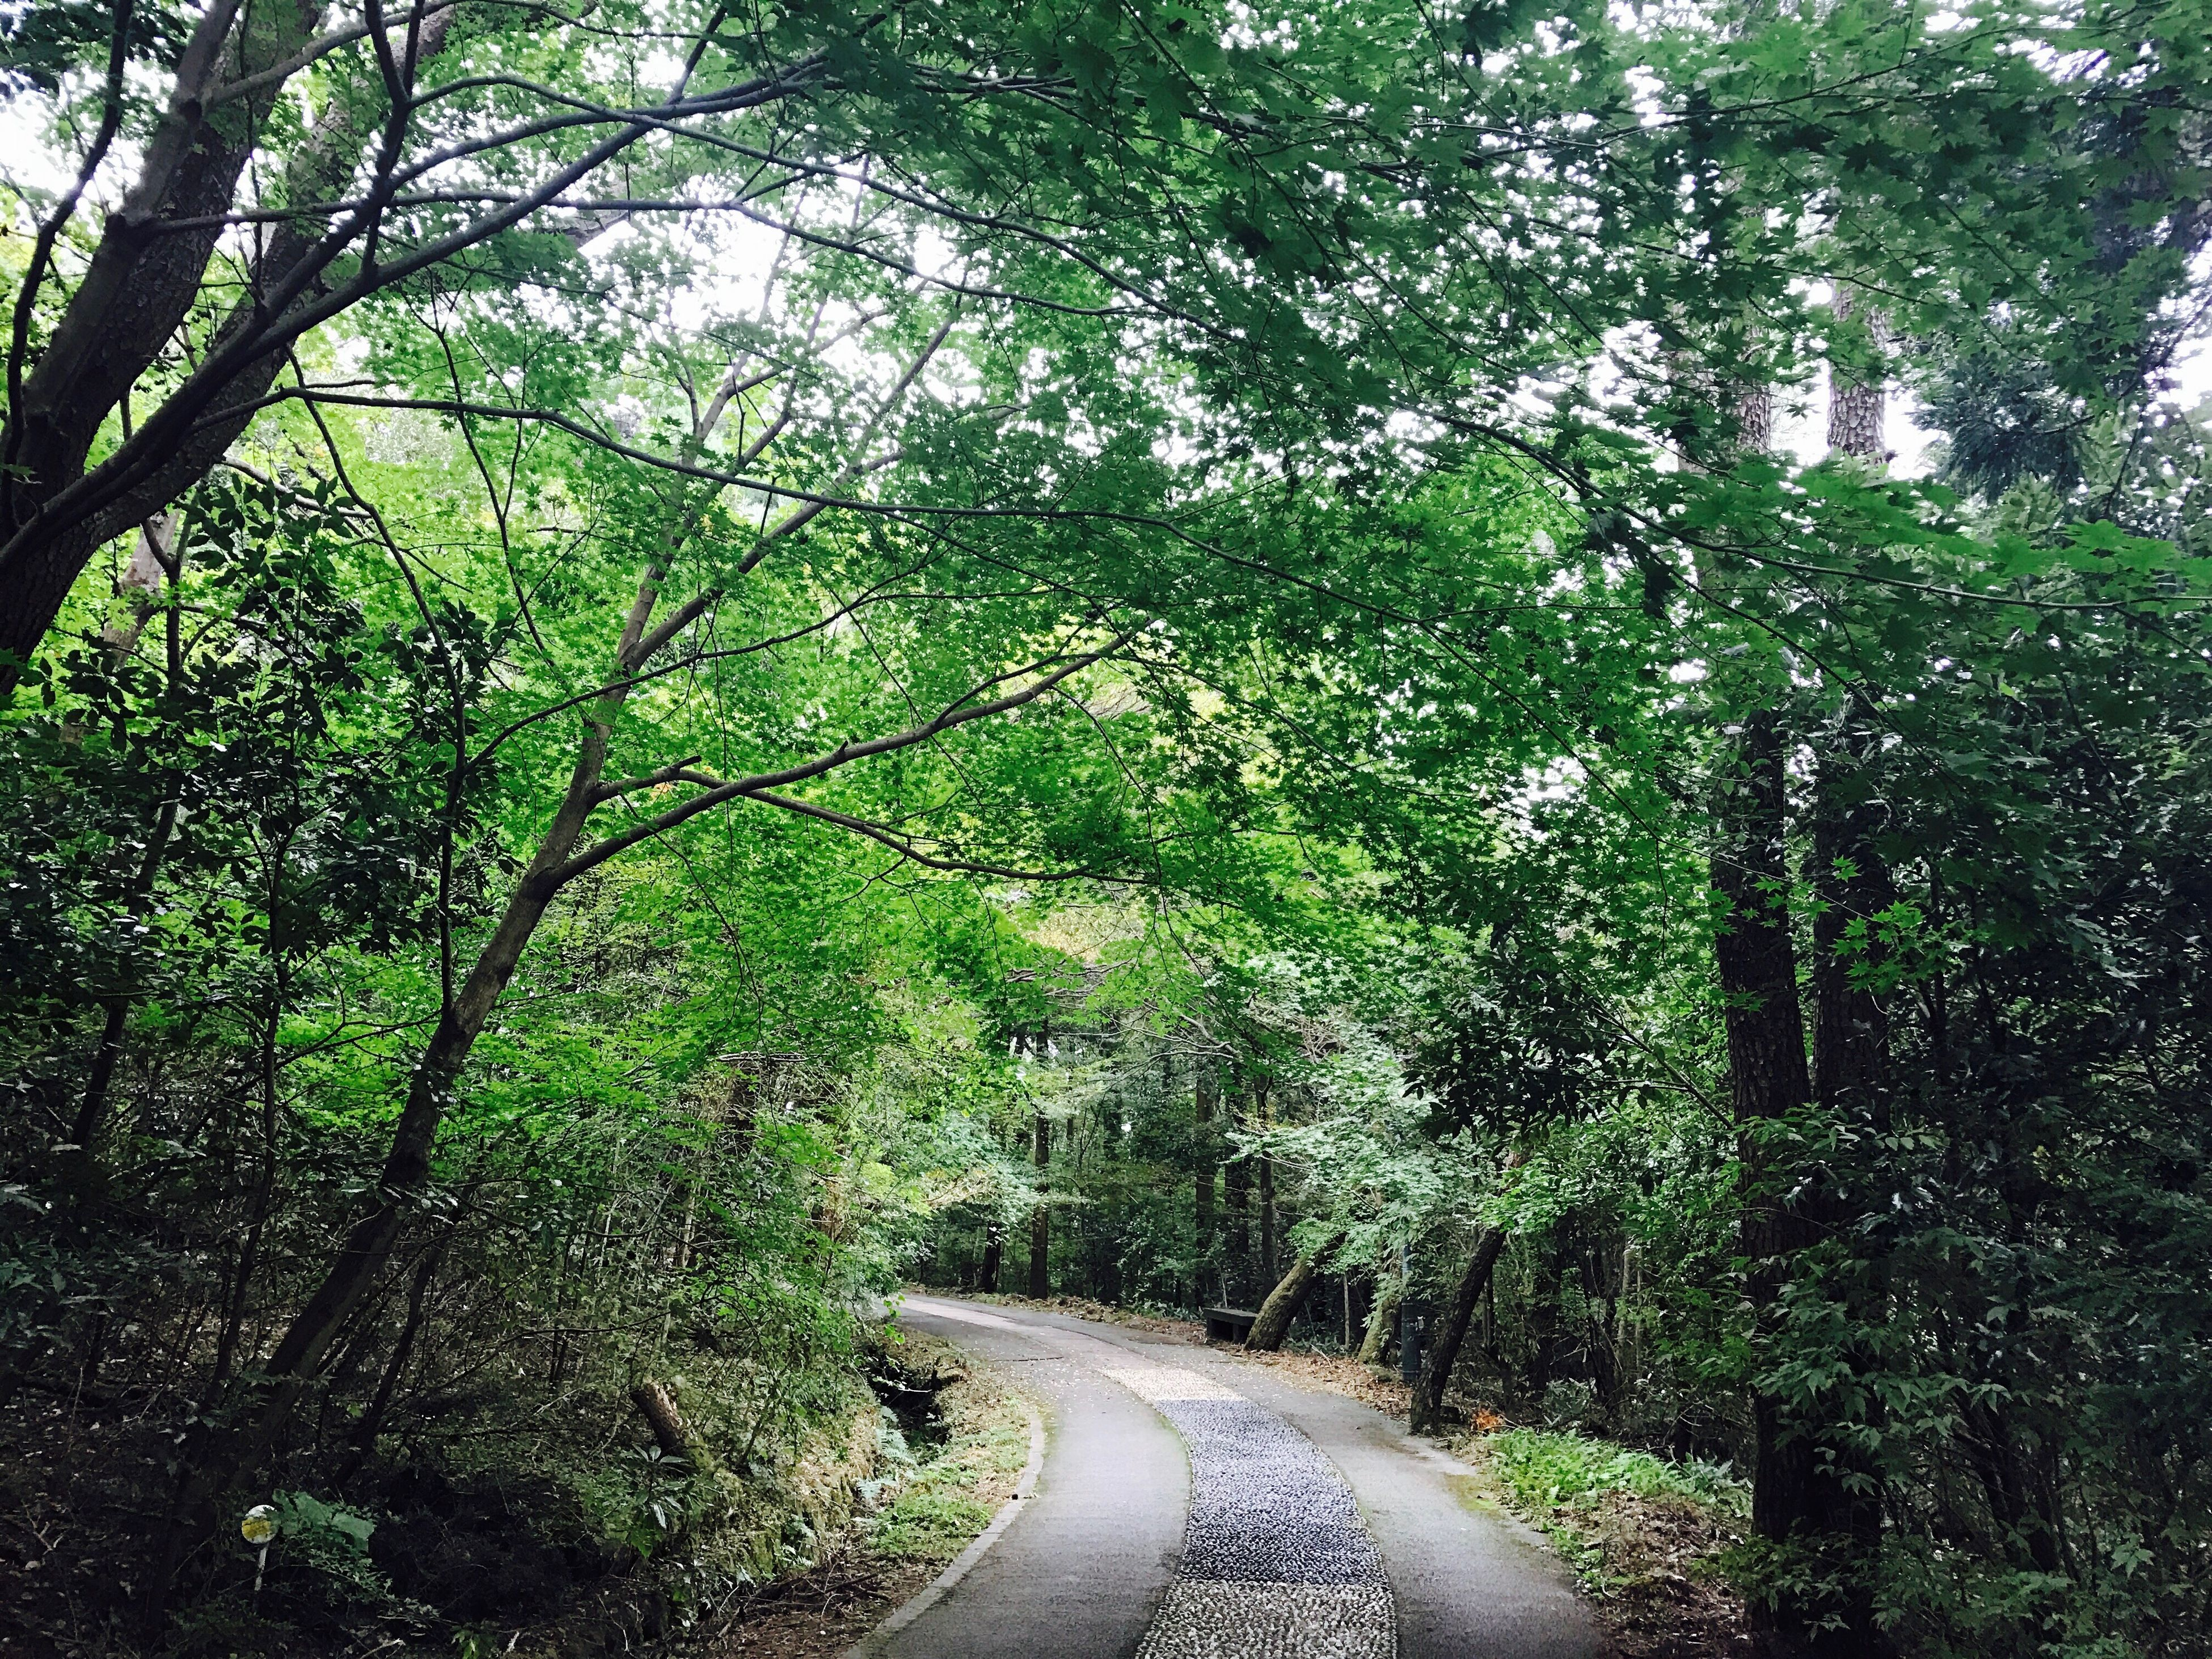 tree, the way forward, growth, tranquil scene, transportation, forest, tranquility, green color, road, scenics, plant, non-urban scene, nature, long, branch, green, beauty in nature, lush foliage, outdoors, curve, day, tourism, diminishing perspective, travel destinations, narrow, greenery, solitude, remote, woodland, vacations, single lane road